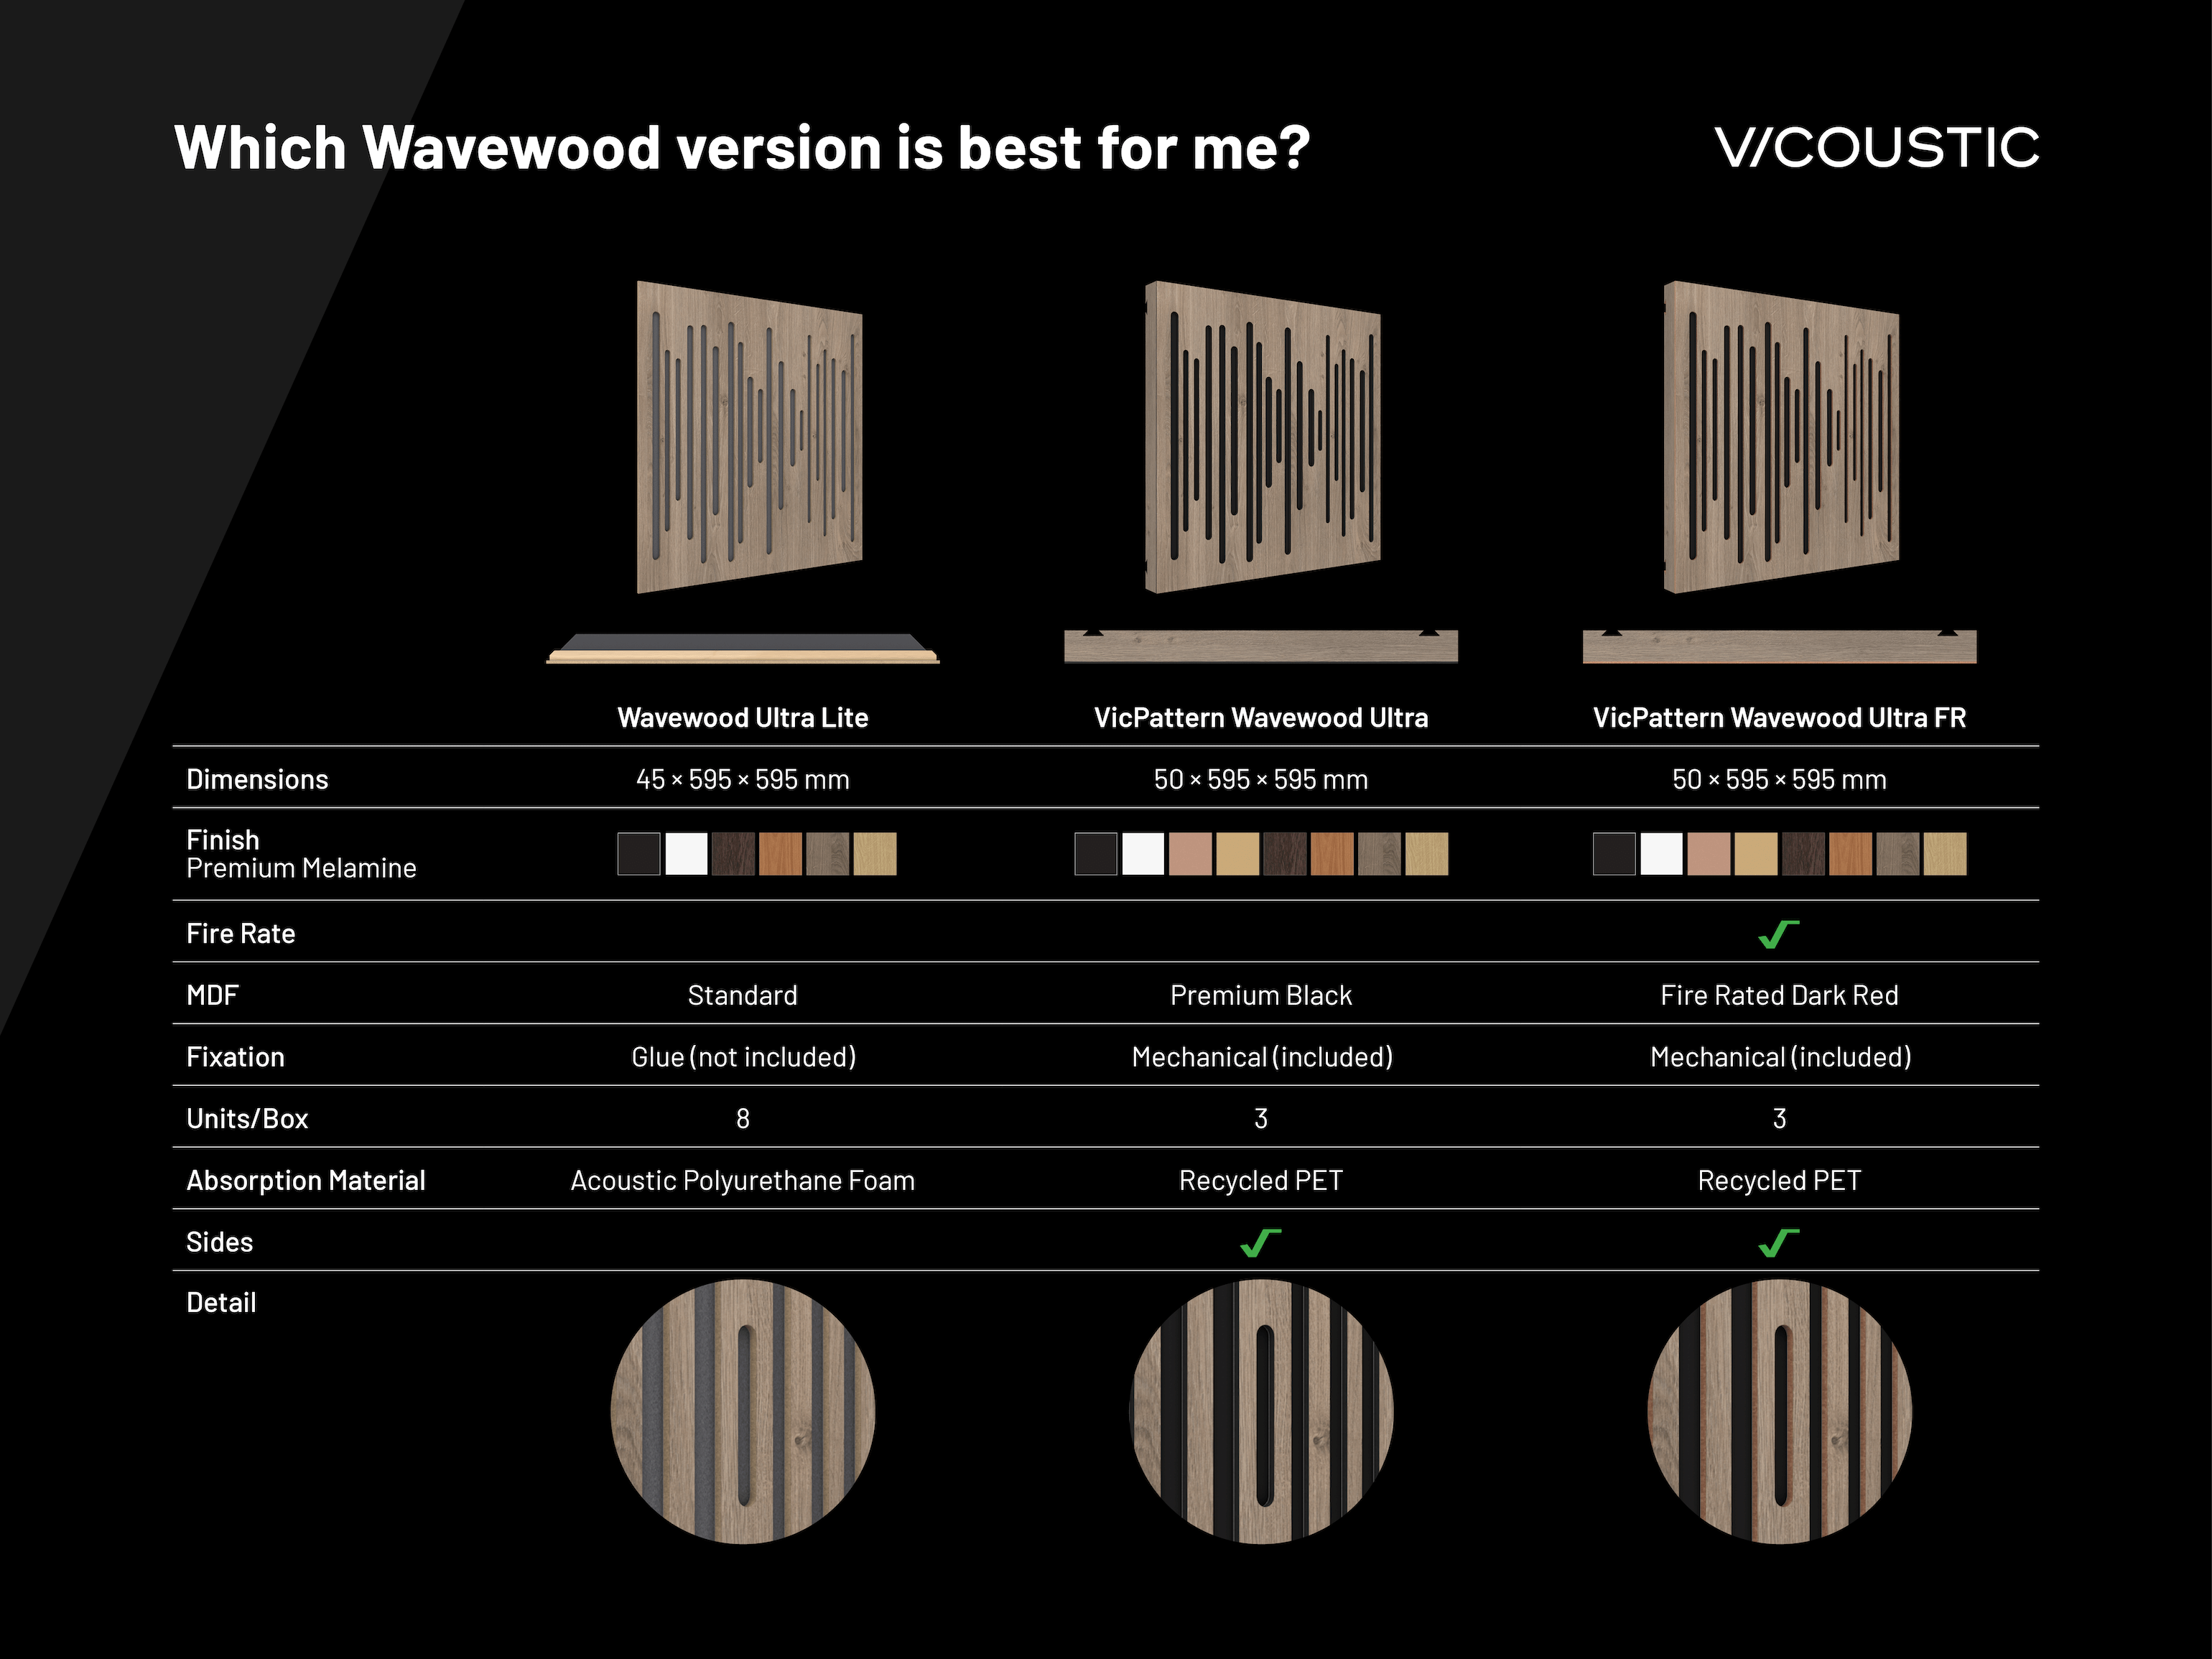 Which Wavewood version is best for me?